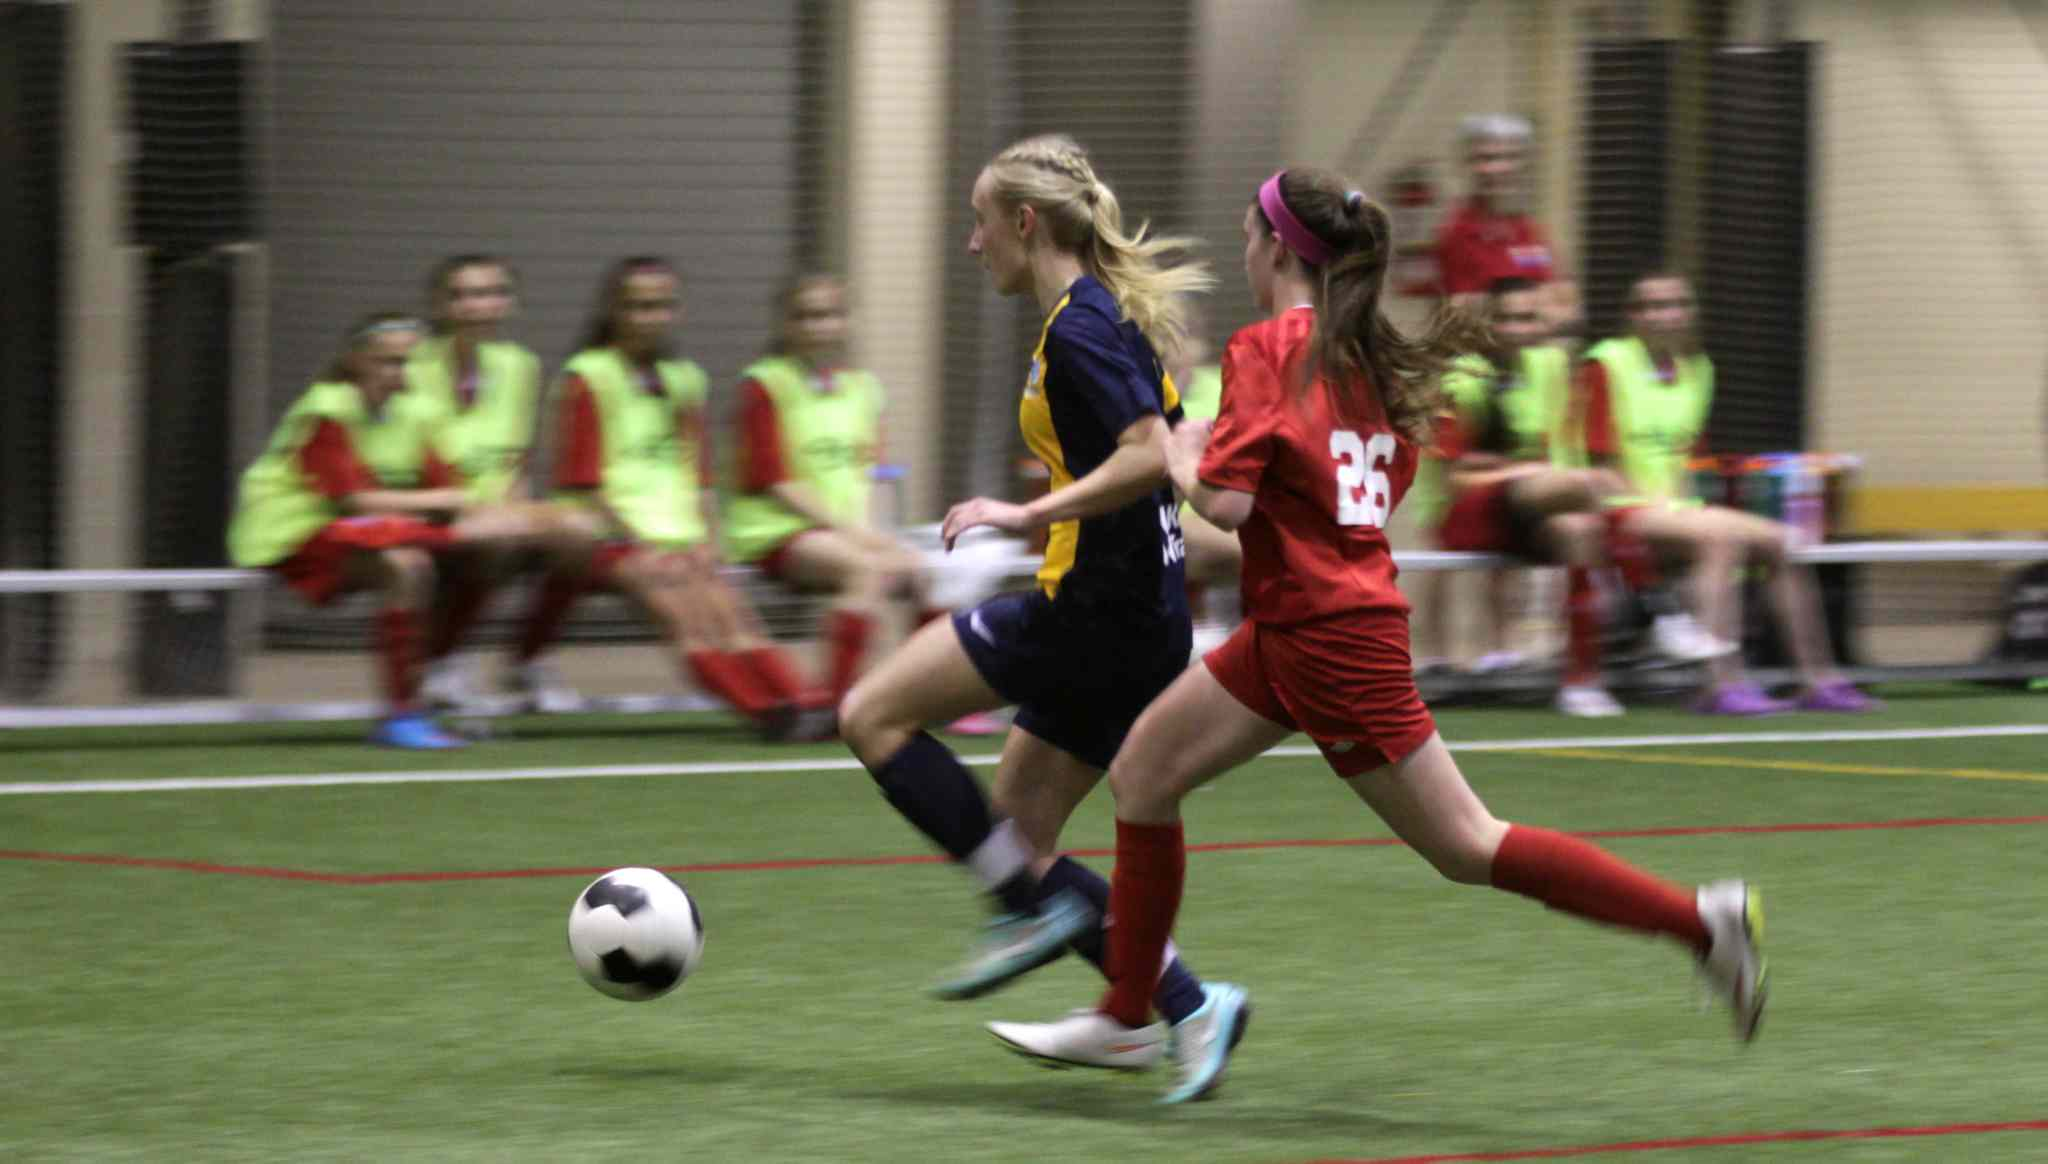 Australia's #7 Nickoletta Flannery (in blue) is pursued down the field by Bonivital's #26 Abby Laurin.